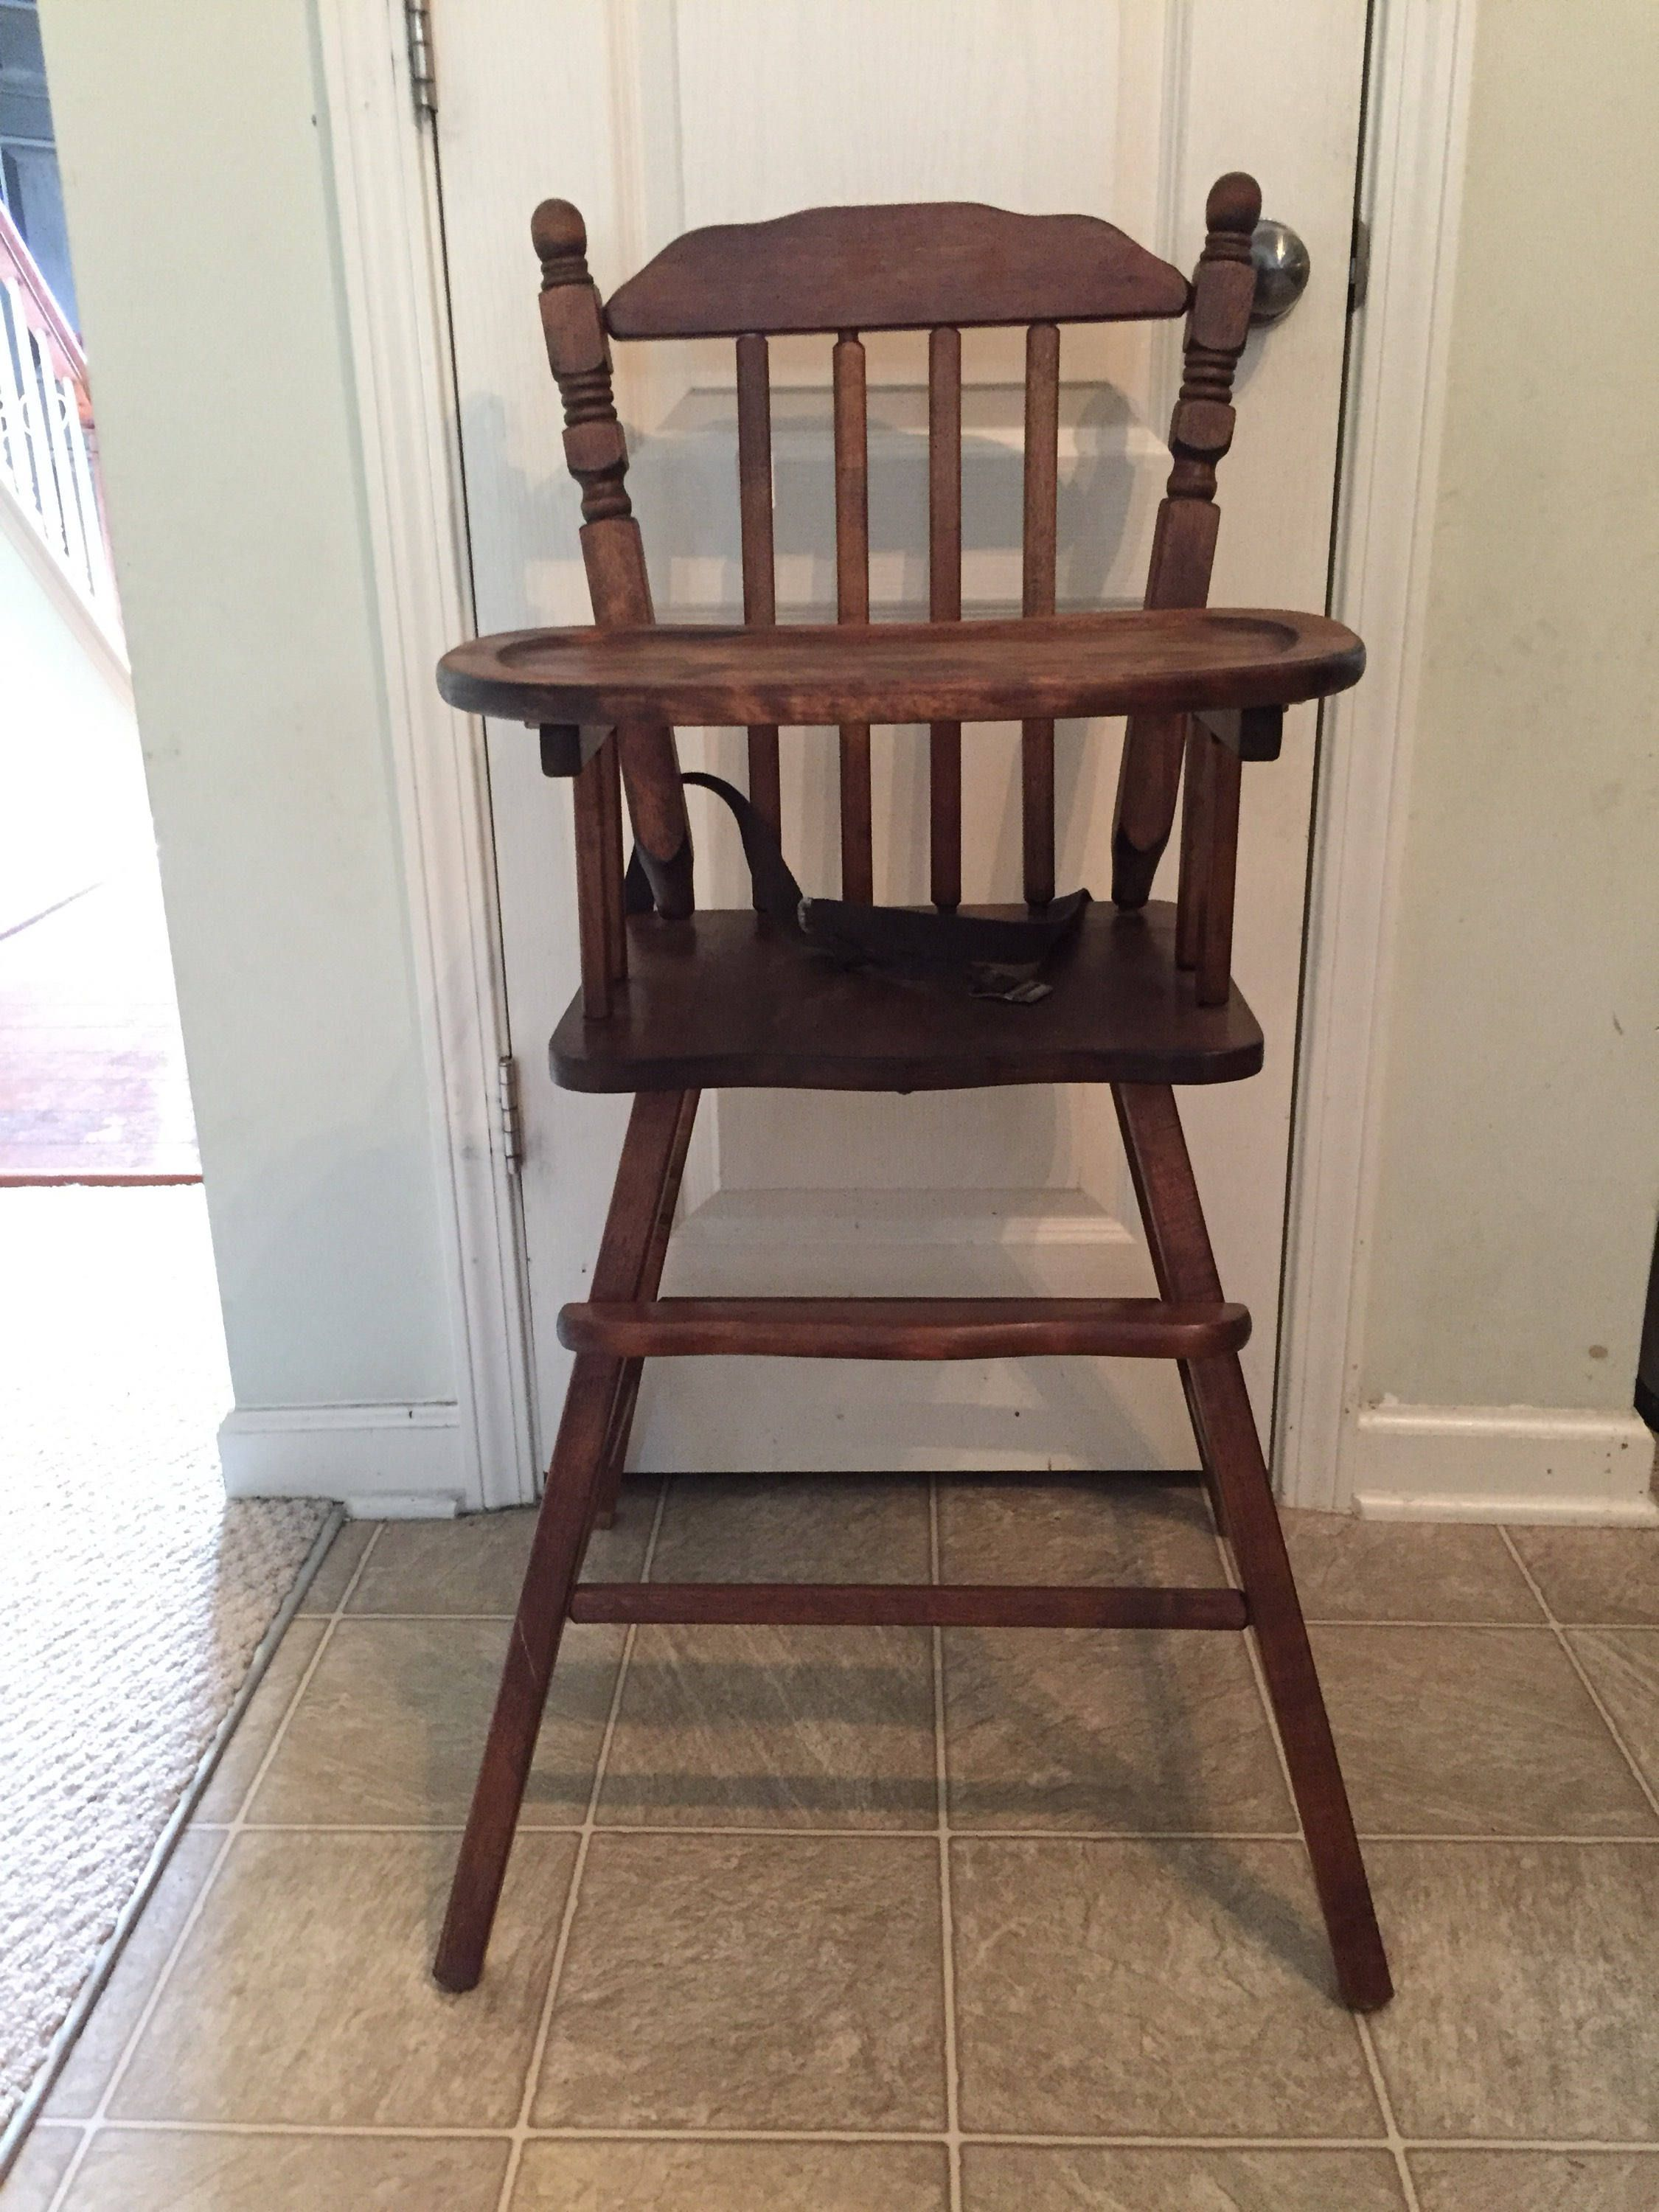 Fully refinished vintage wooden high chair jenny lind